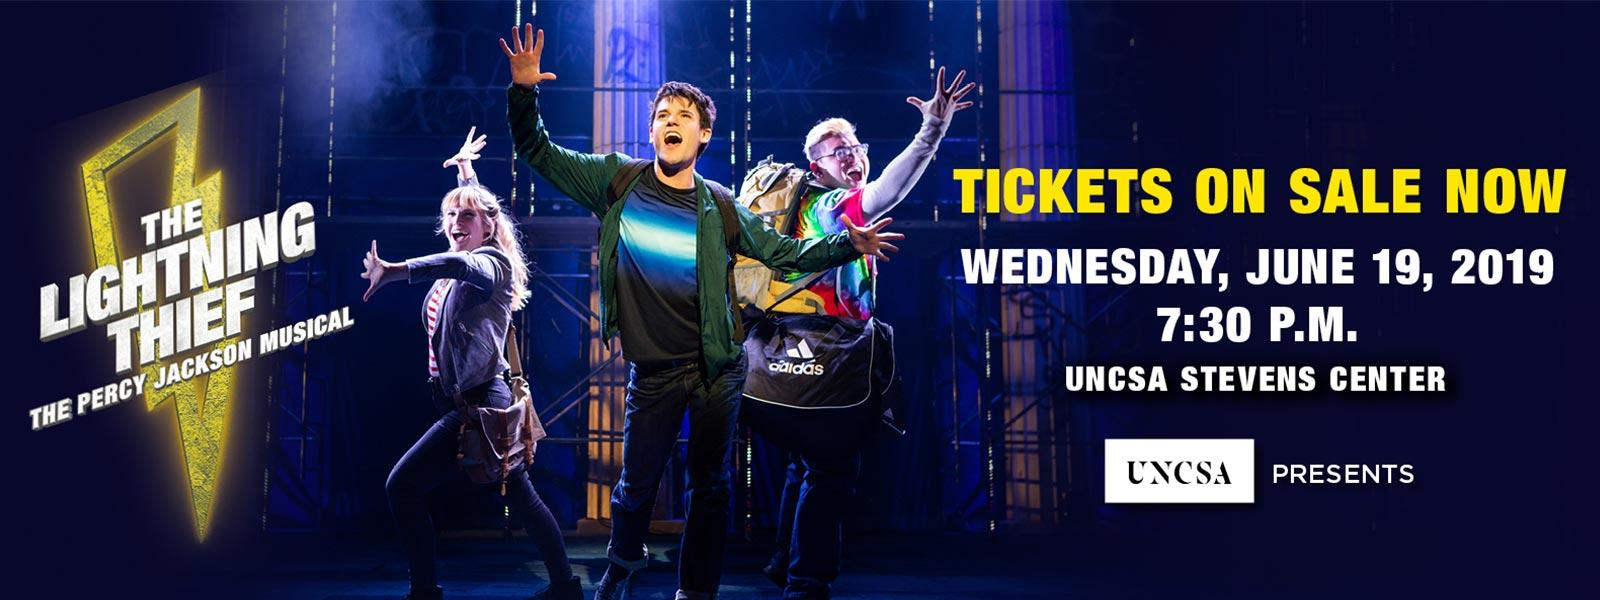 "UNCSA Presents delivers a show for the whole family to enjoy—at the historic Stevens Center in Winston-Salem, for one night only! Based on the bestselling Disney-Hyperion novel by Rick Riordan, ""The Lightning Thief: The Percy Jackson Musical"" is ""worthy of the gods!"" (Time Out New York) >>BUY TICKETS"